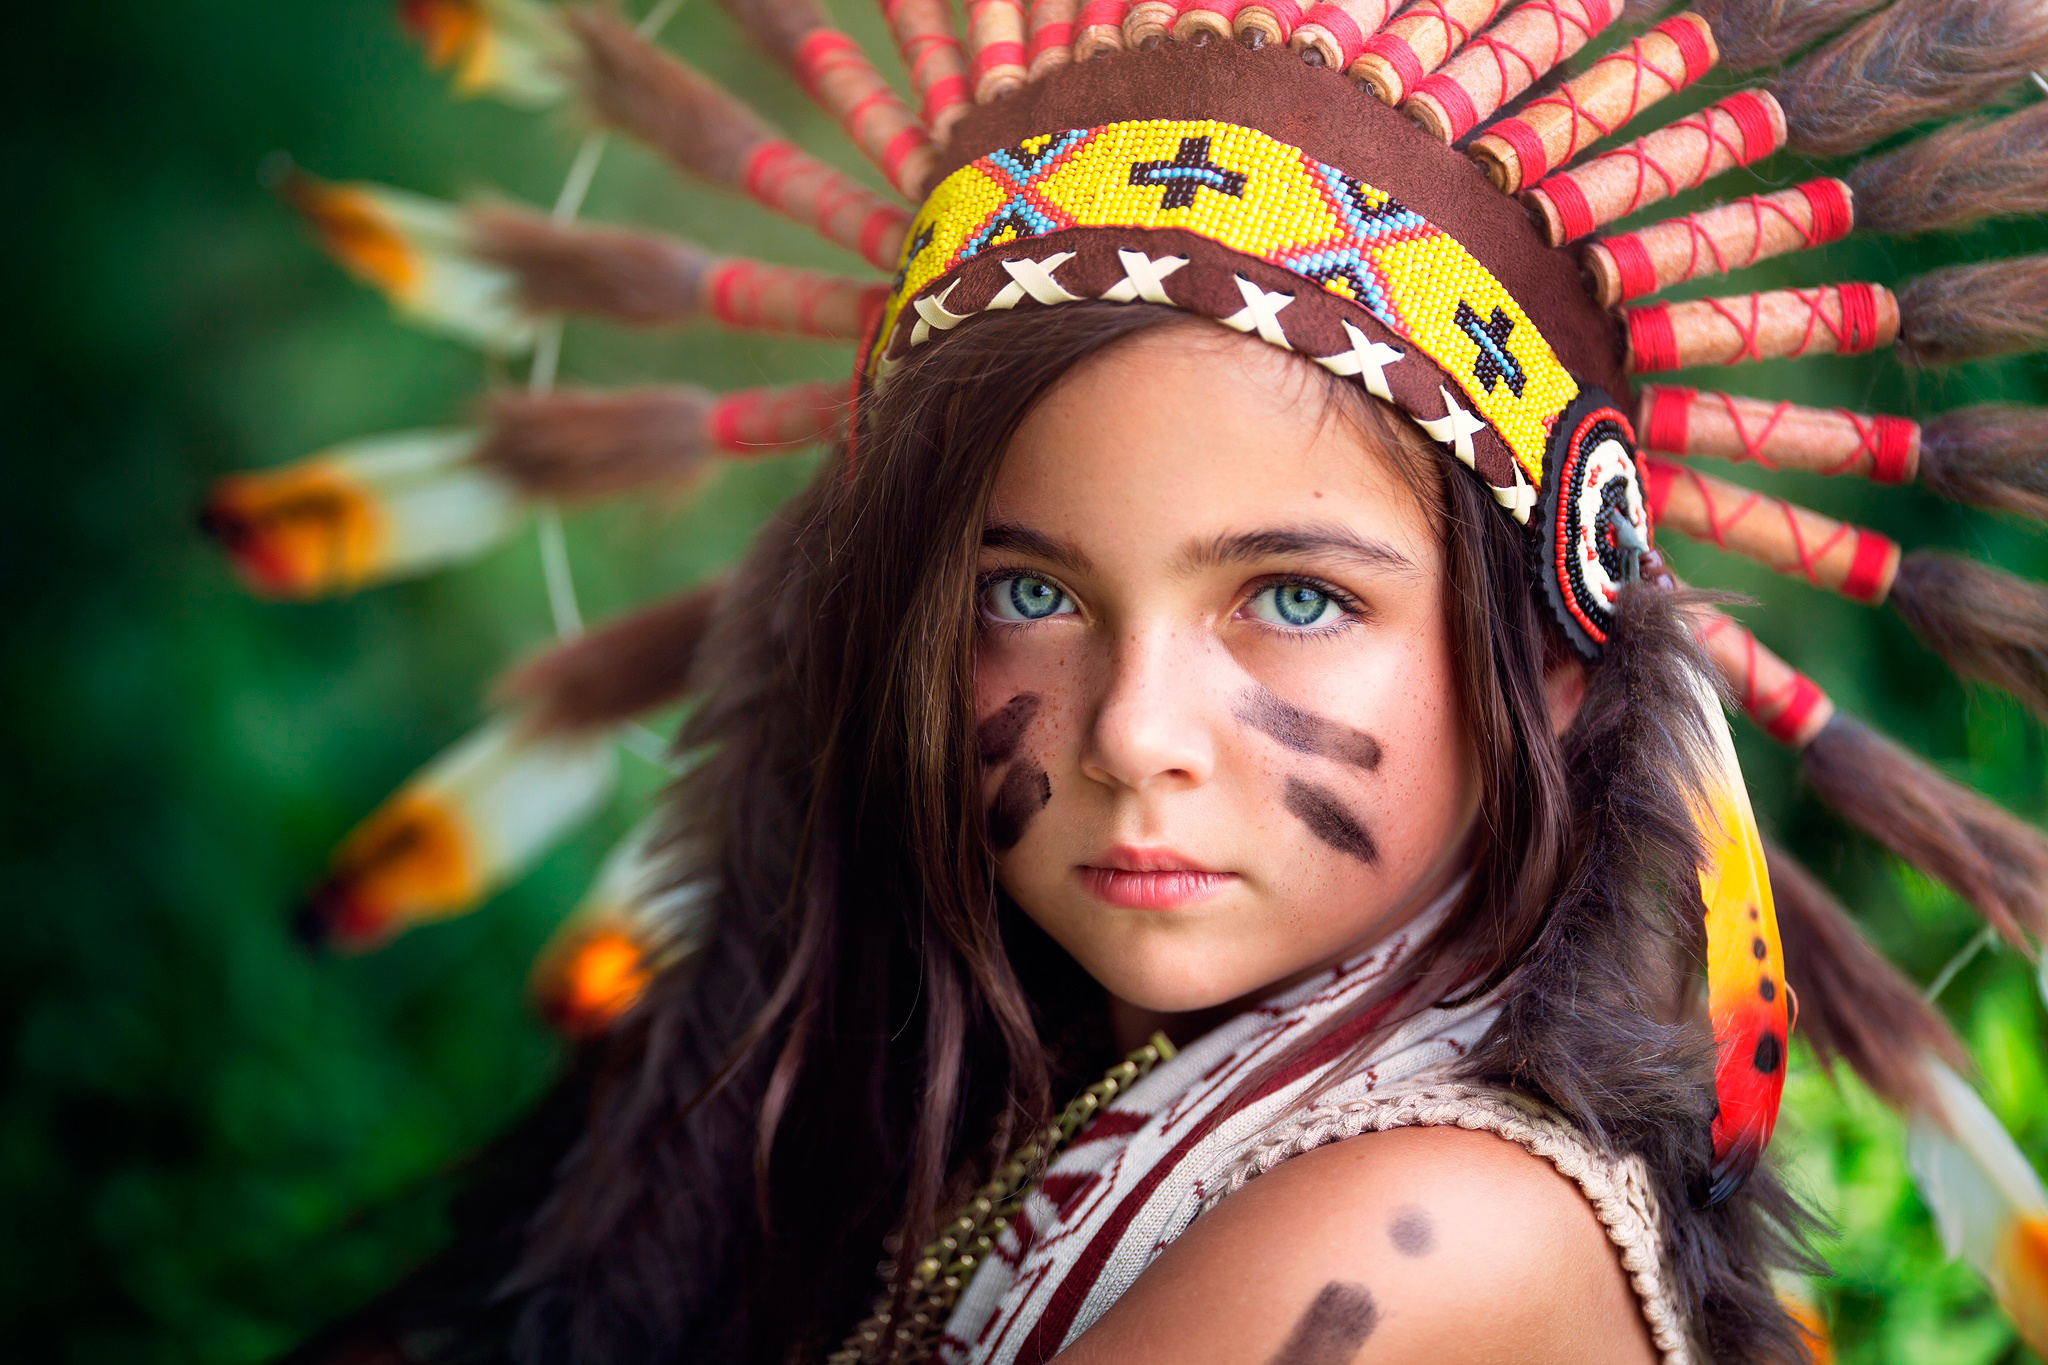 wallpaper wiki free download girl native american backgrounds pic wpe005922